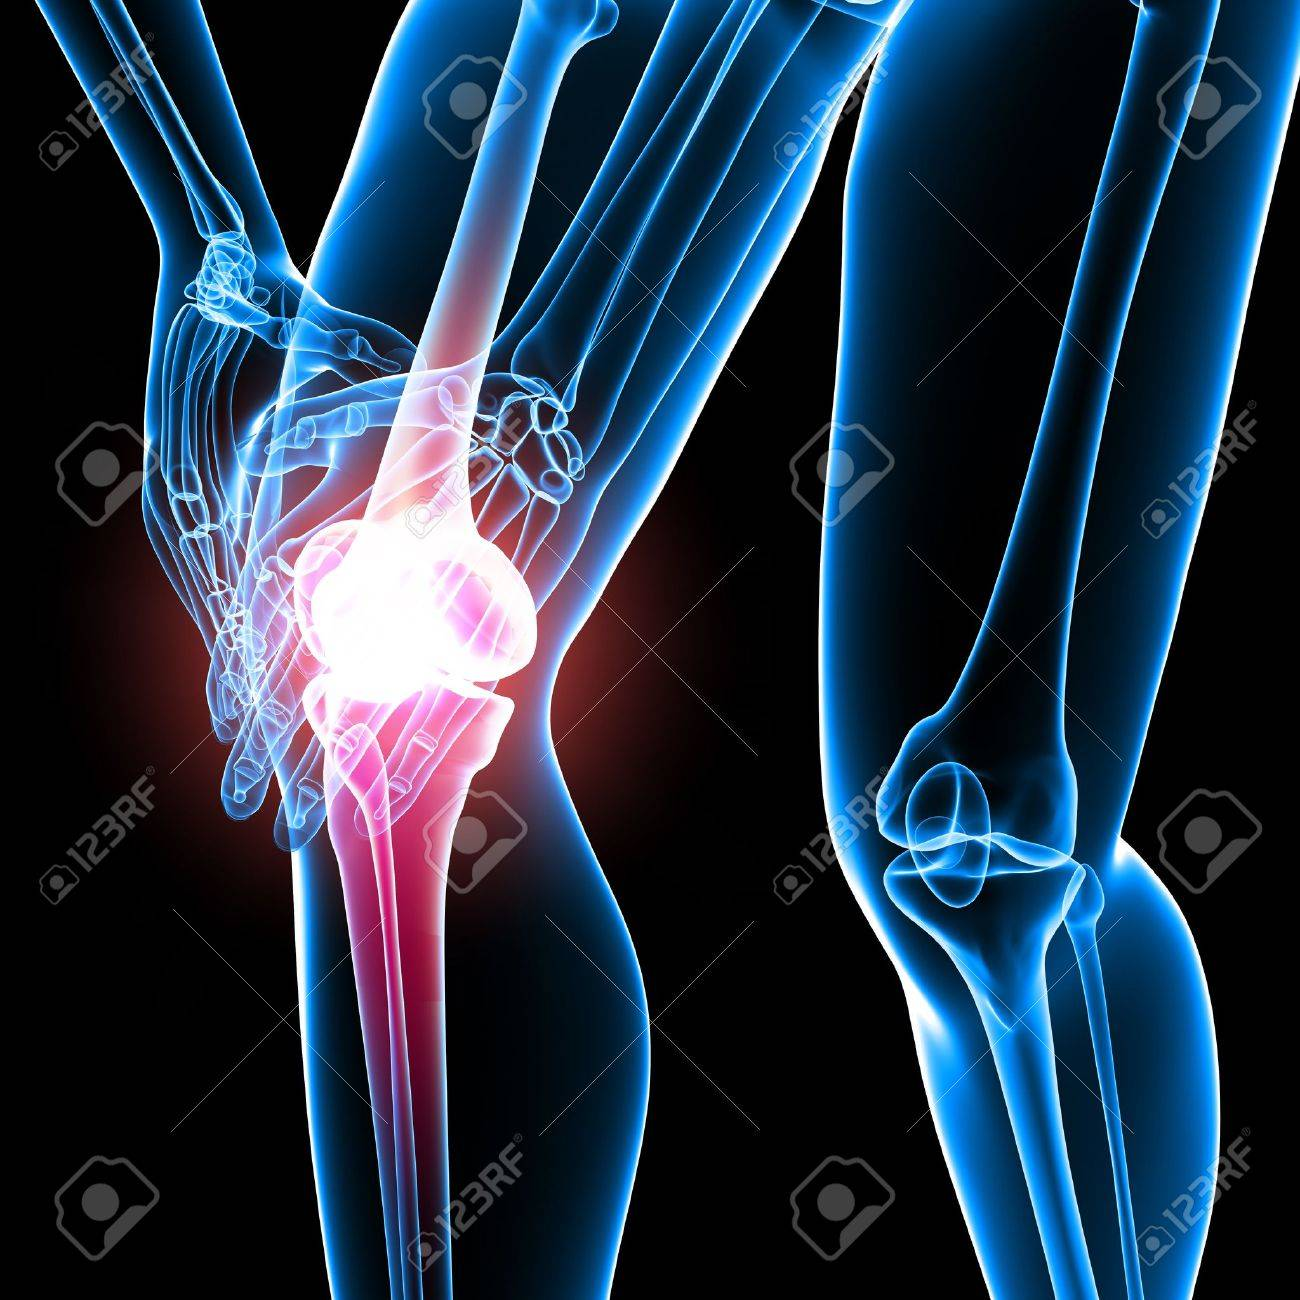 X-ray Anatomy Of Female Knee Pain Stock Photo, Picture And Royalty ...